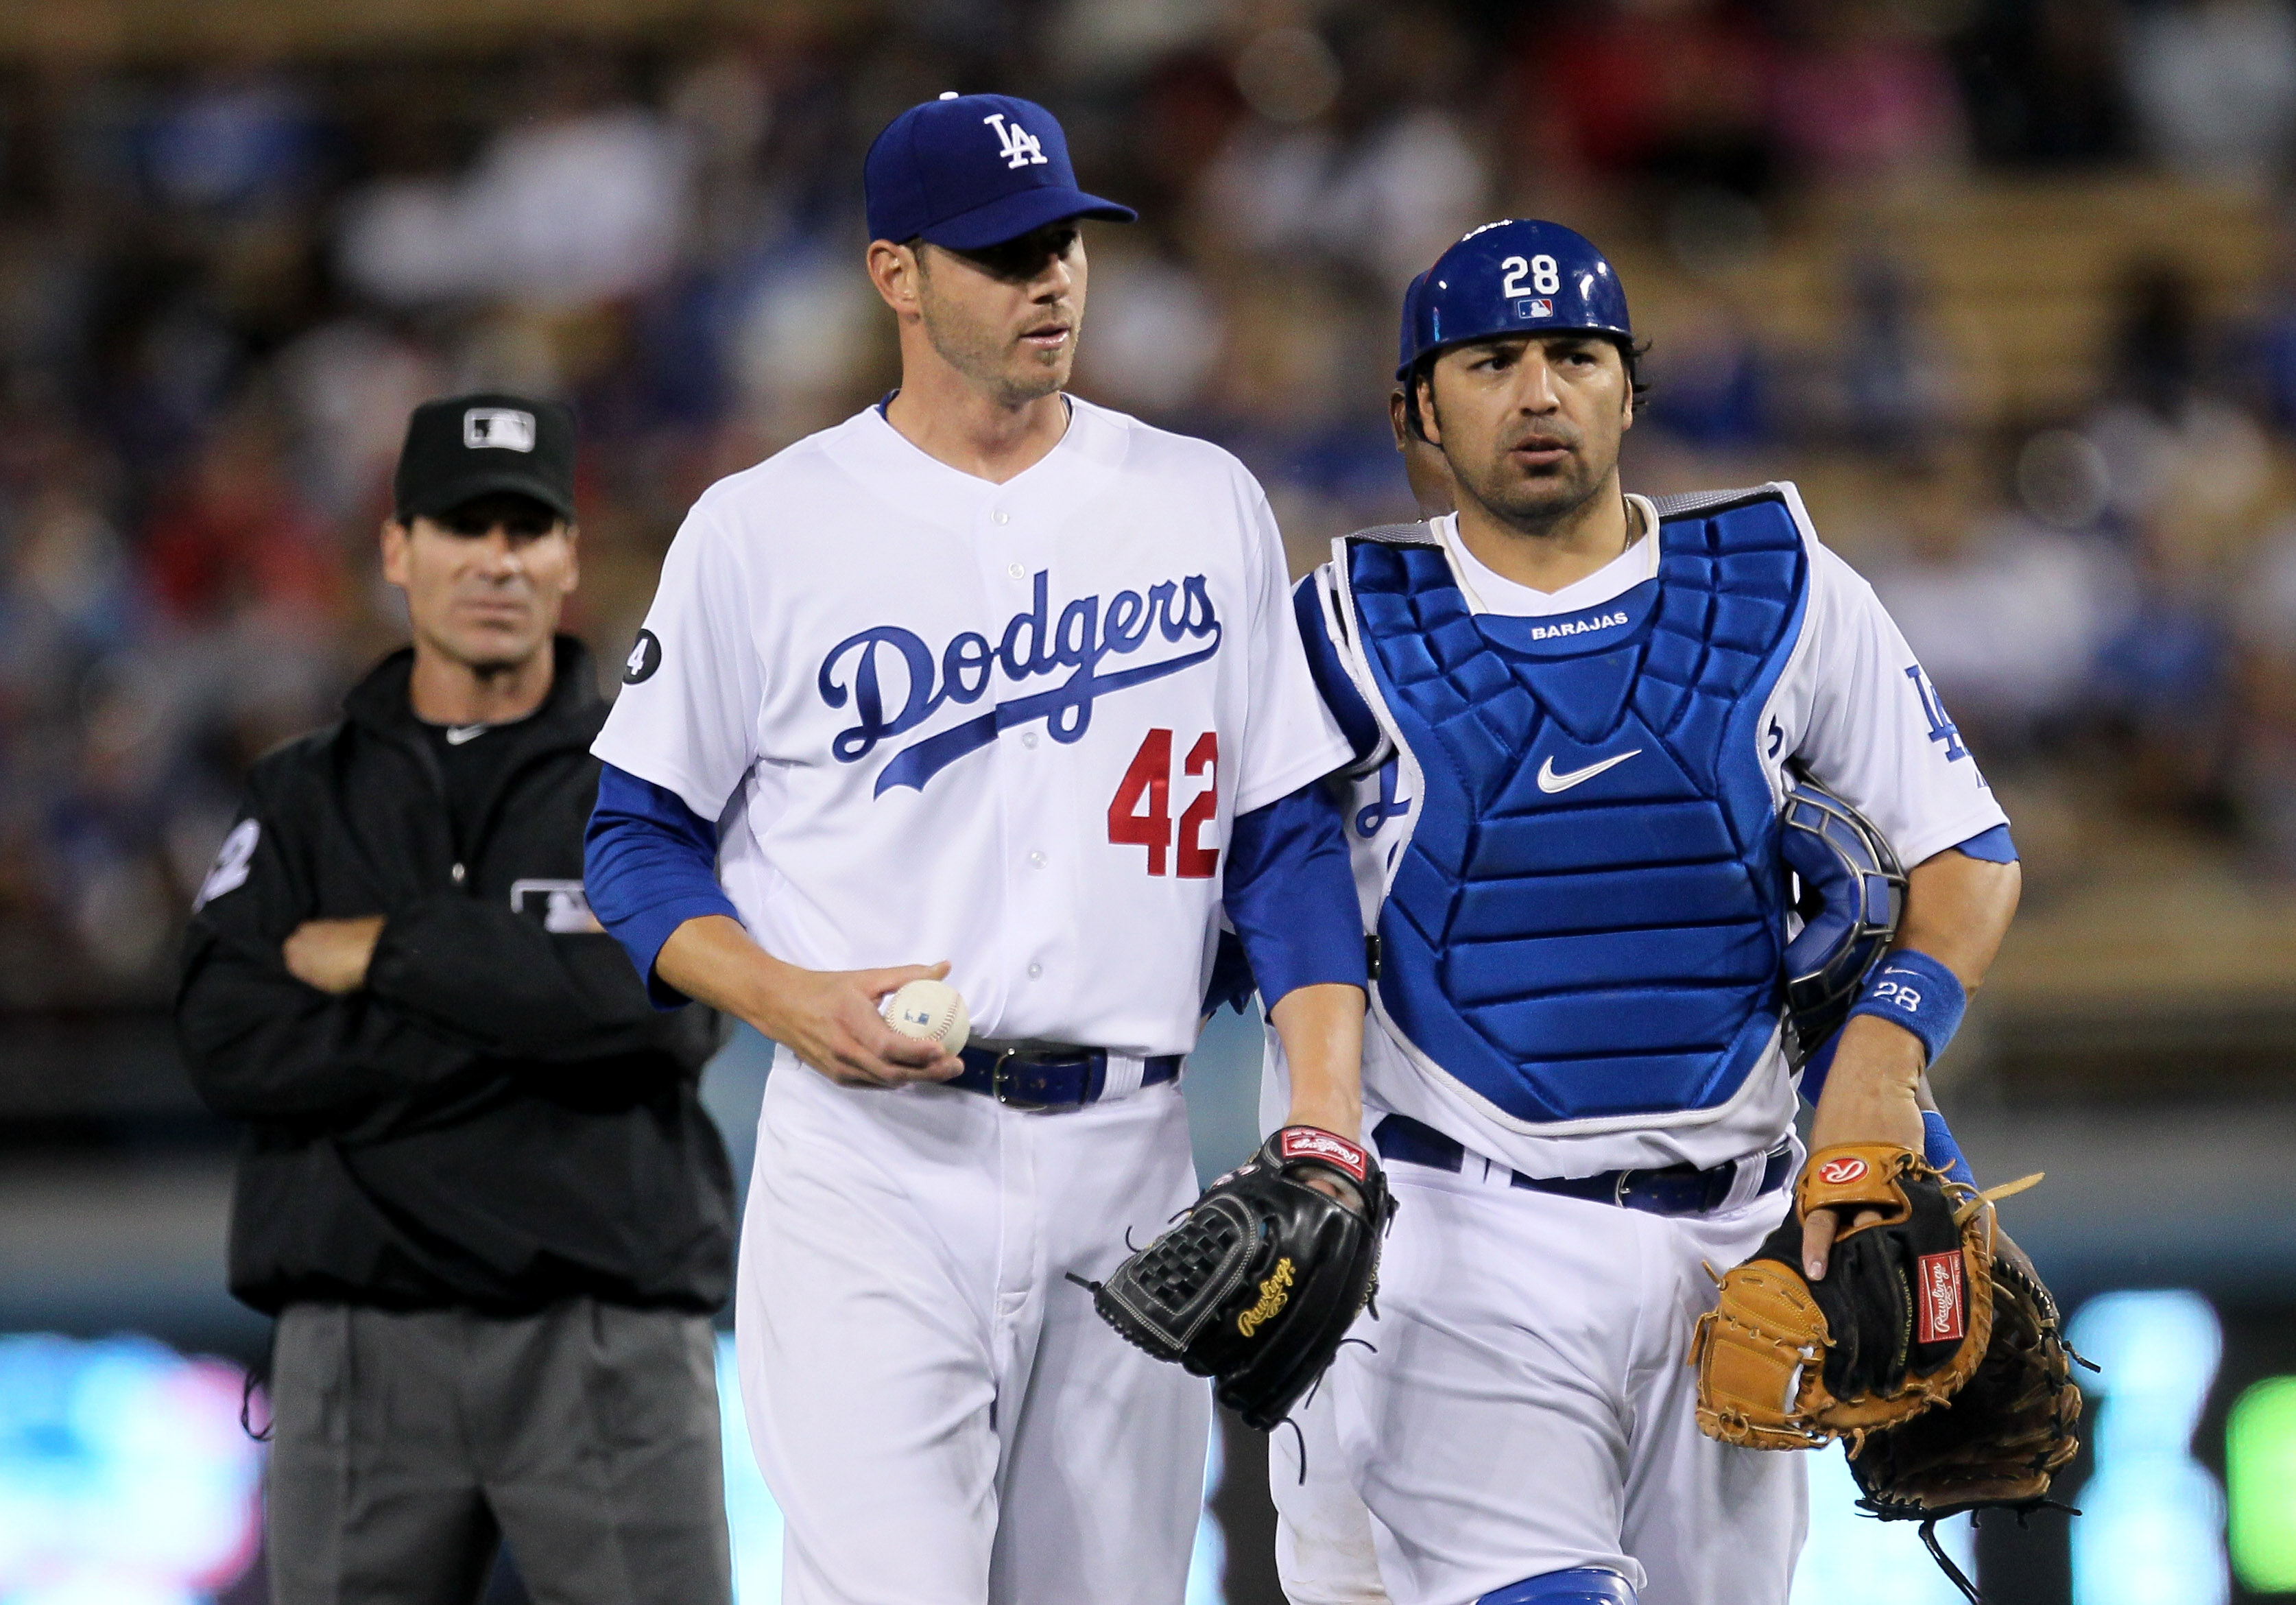 LOS ANGELES - APRIL 15:   Pitcher Jon Garland #21 of the Los Angeles Dodgers is walked back to the mound by catcher Rod Barajas #28 after arguing over a run scoring balk call by umpire Angel Hernandez (L) in the second inning against the St. Louis Cardina